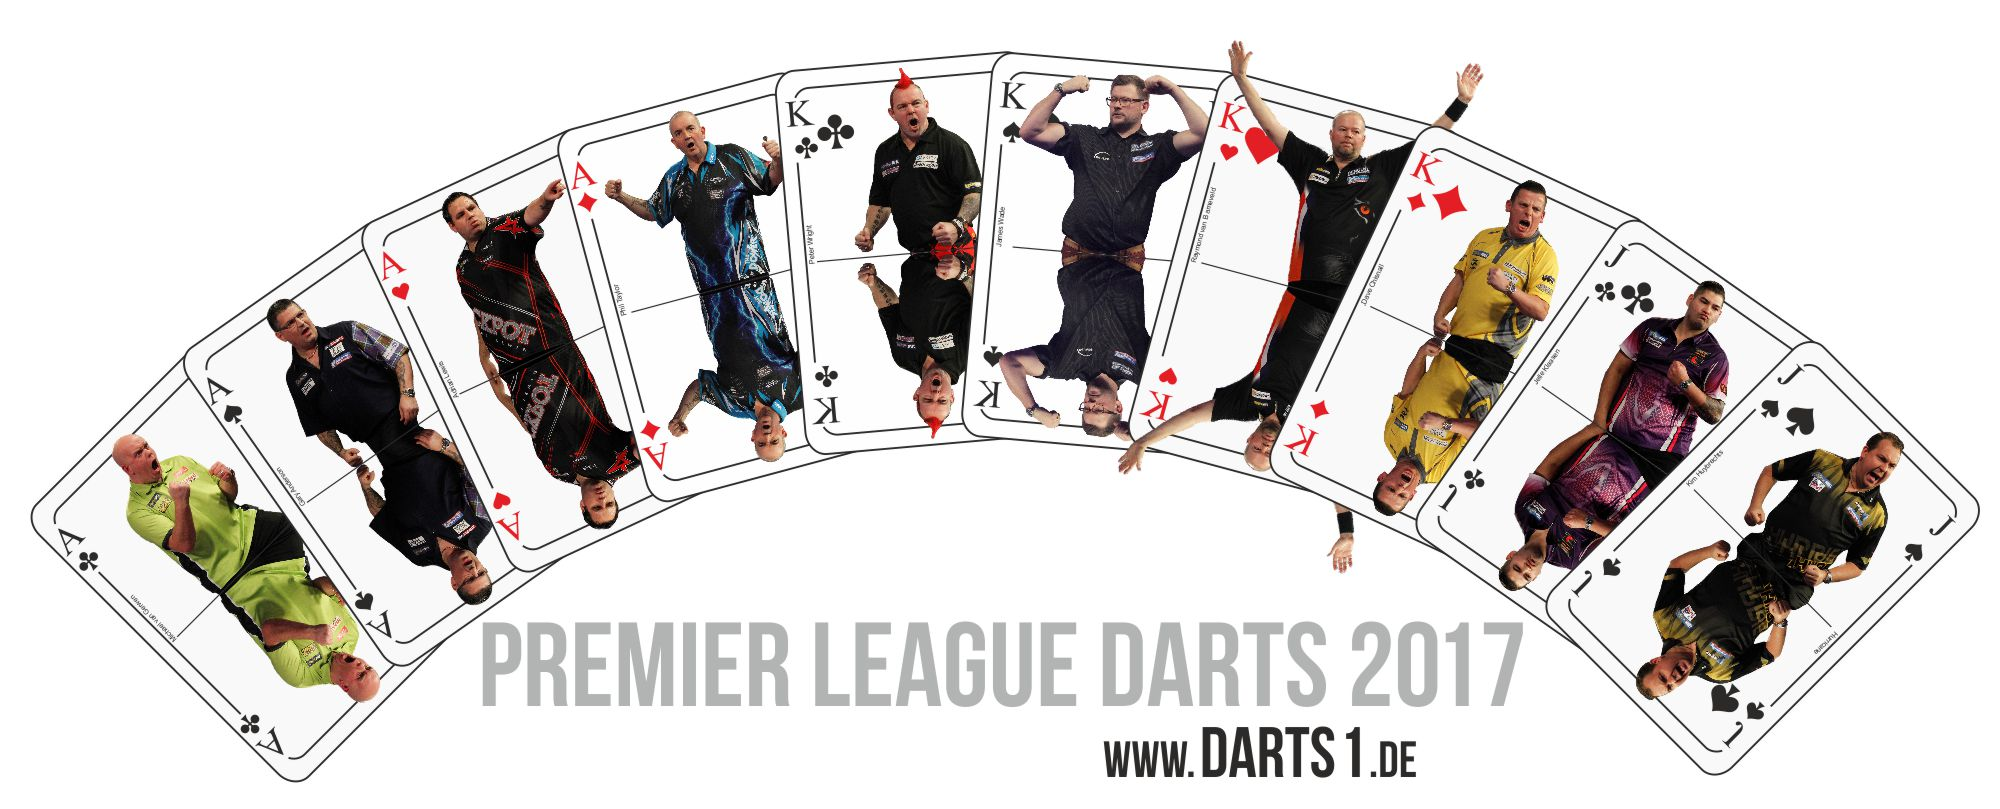 preimer league darts